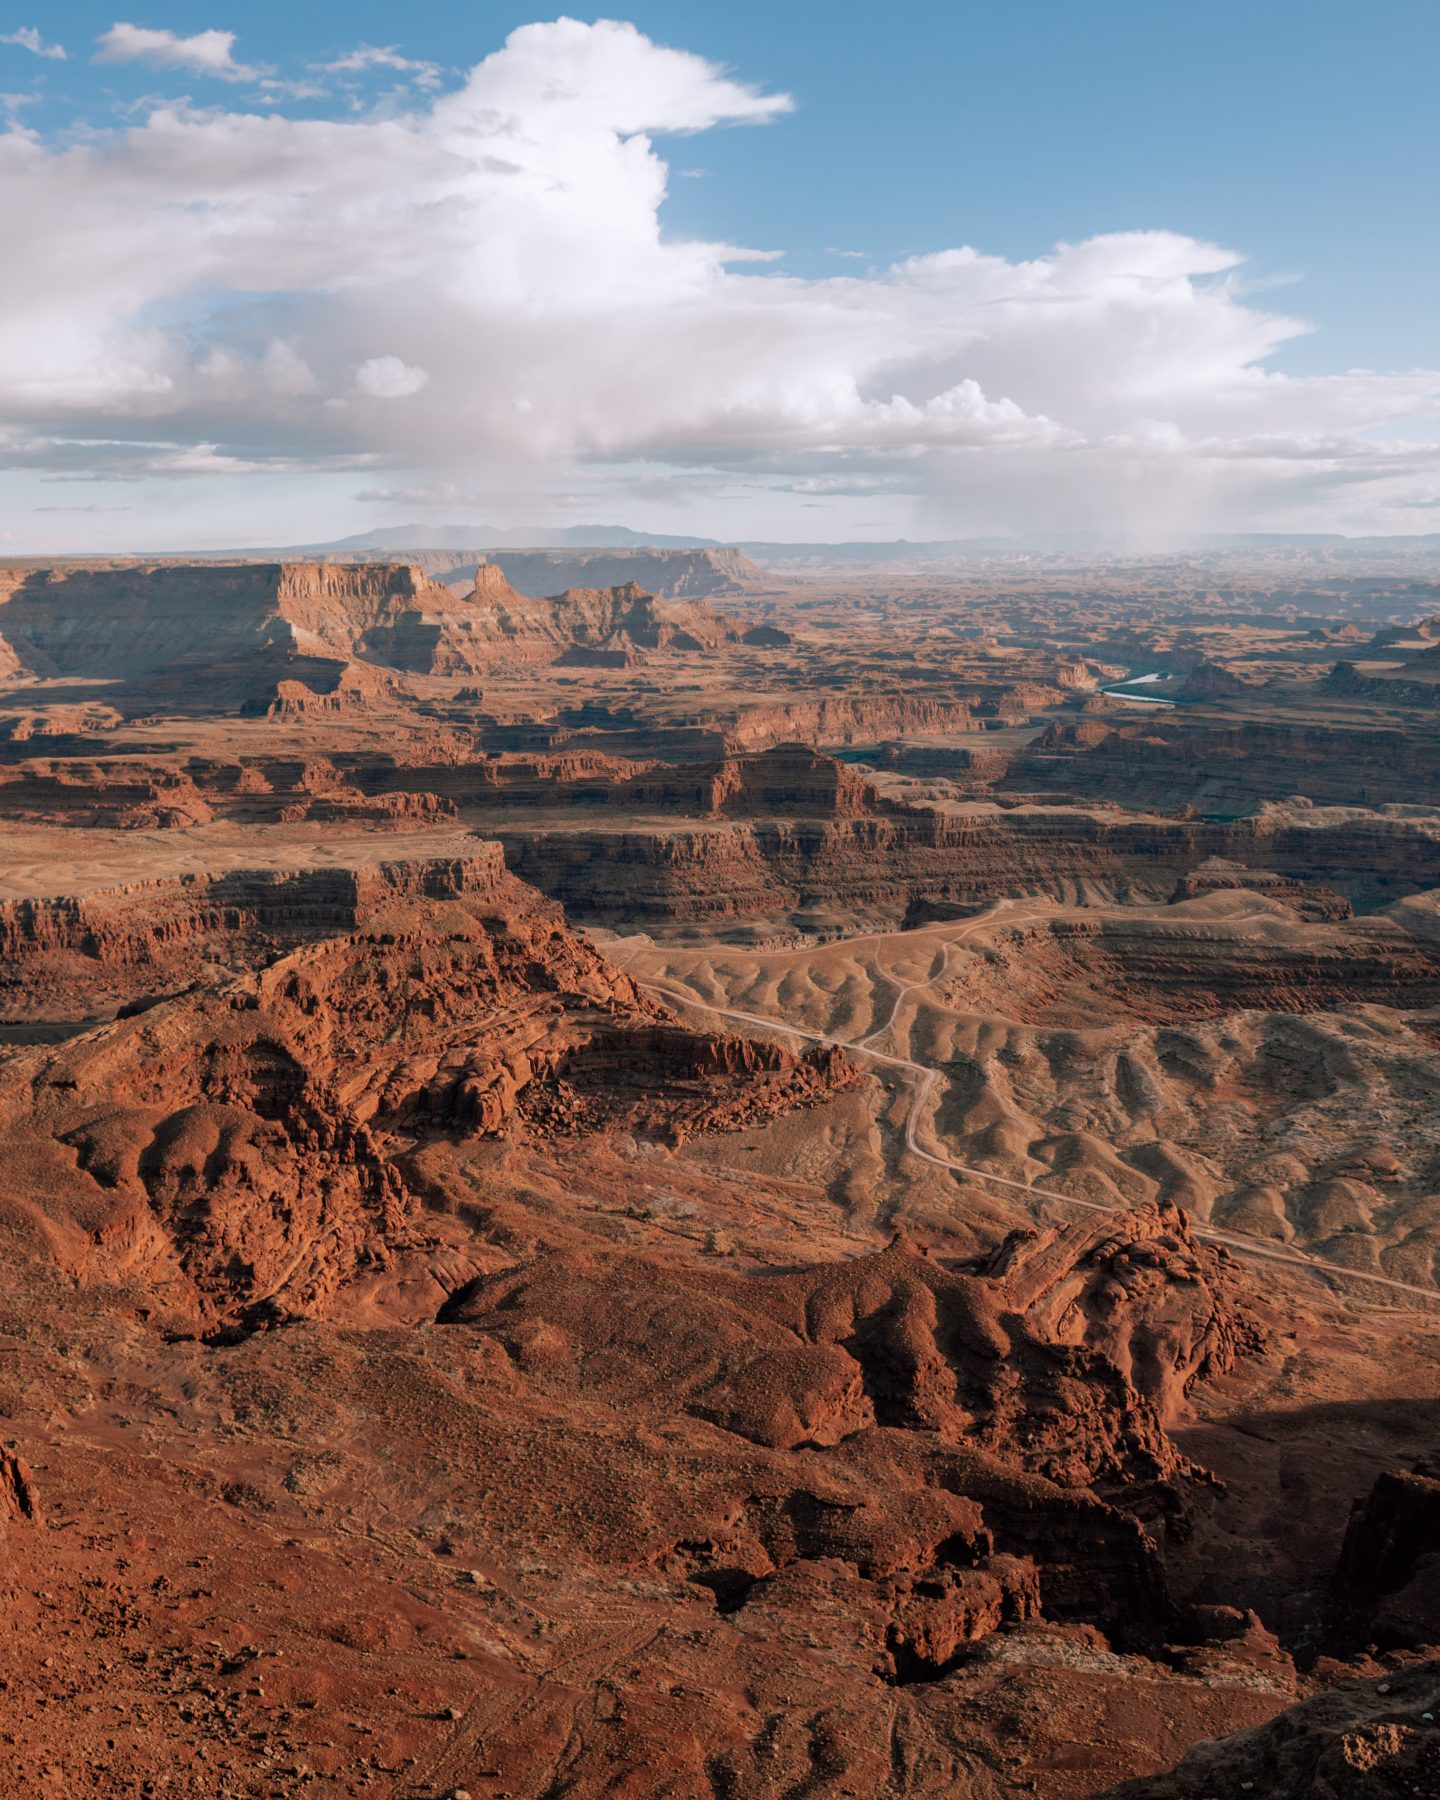 View of Dead Horse Point State Park in Moab, Utah